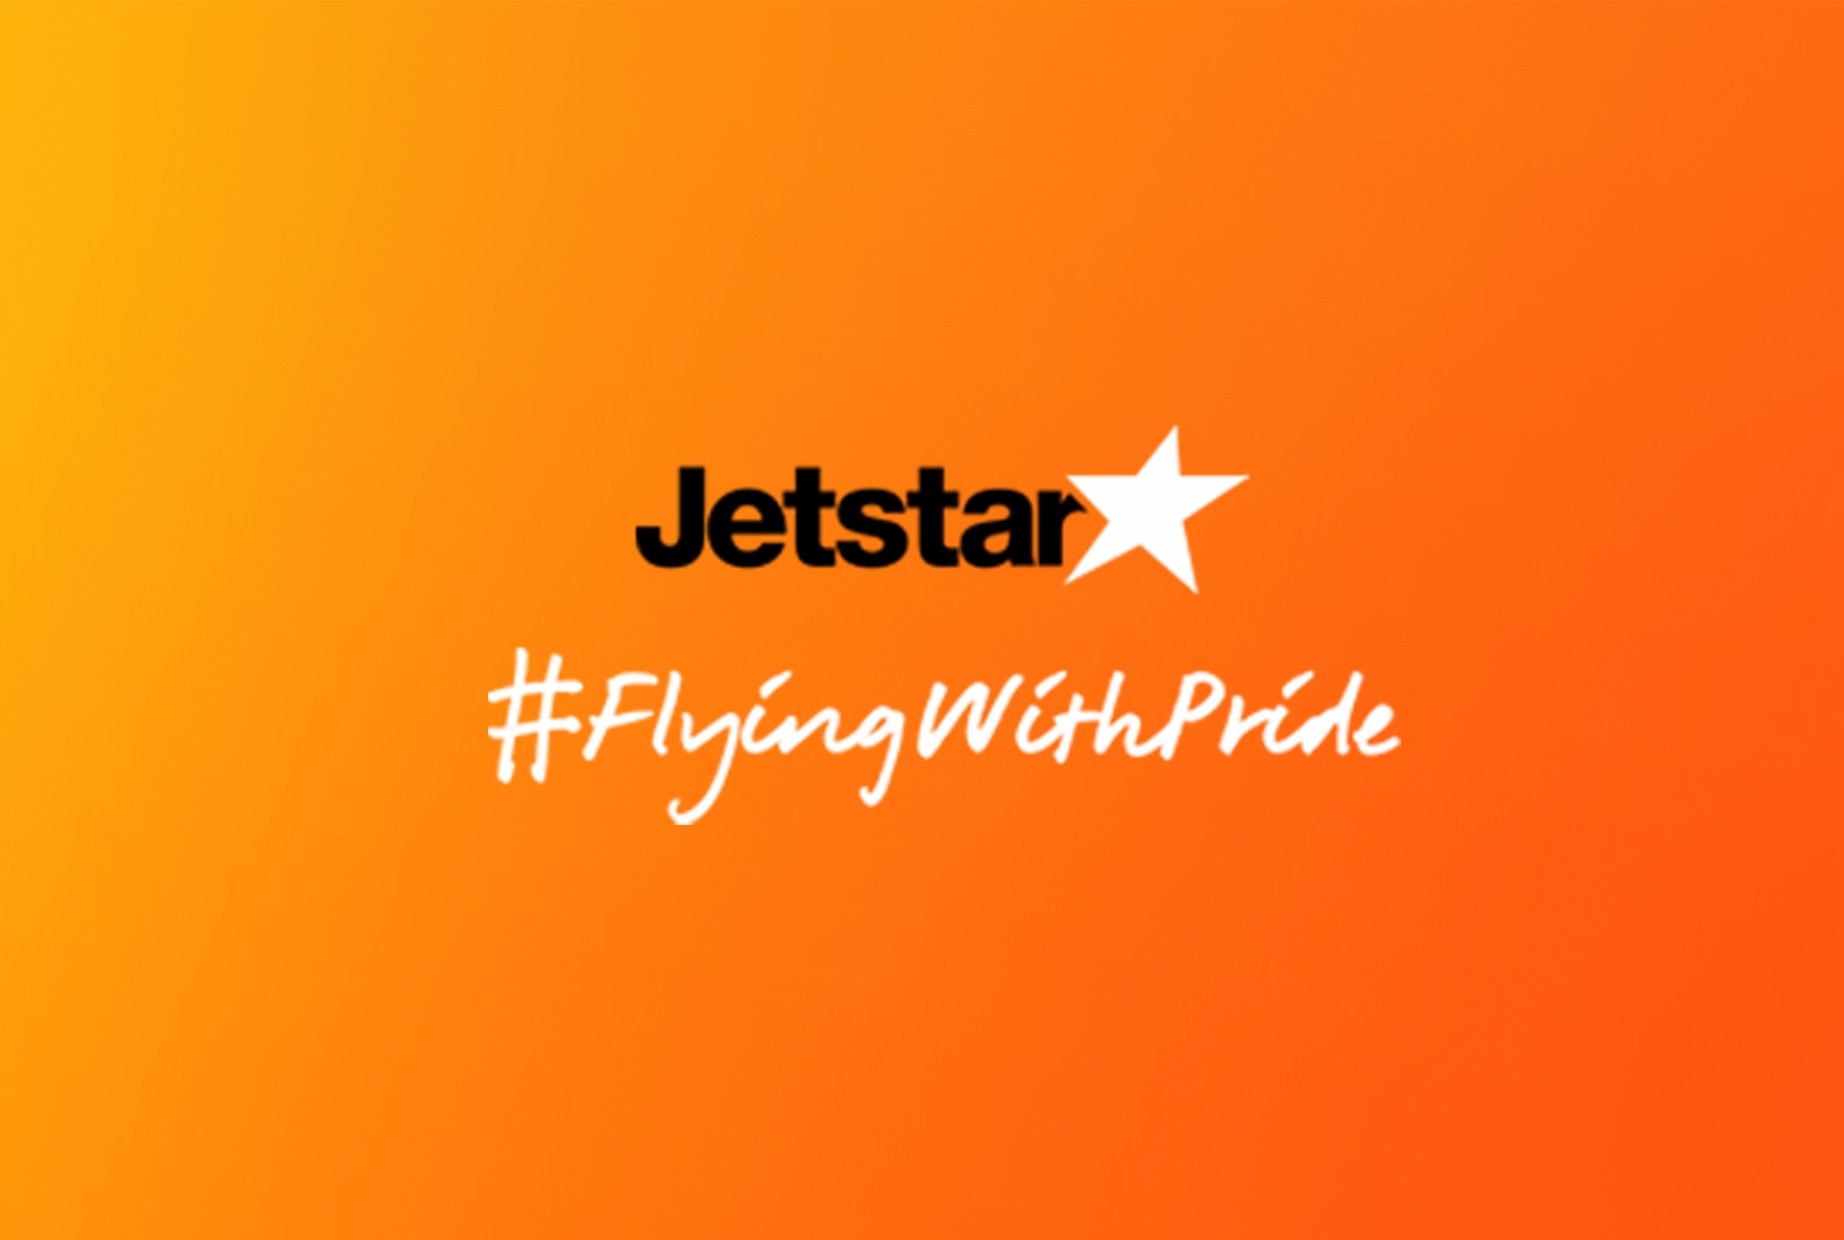 #flyingwithpride